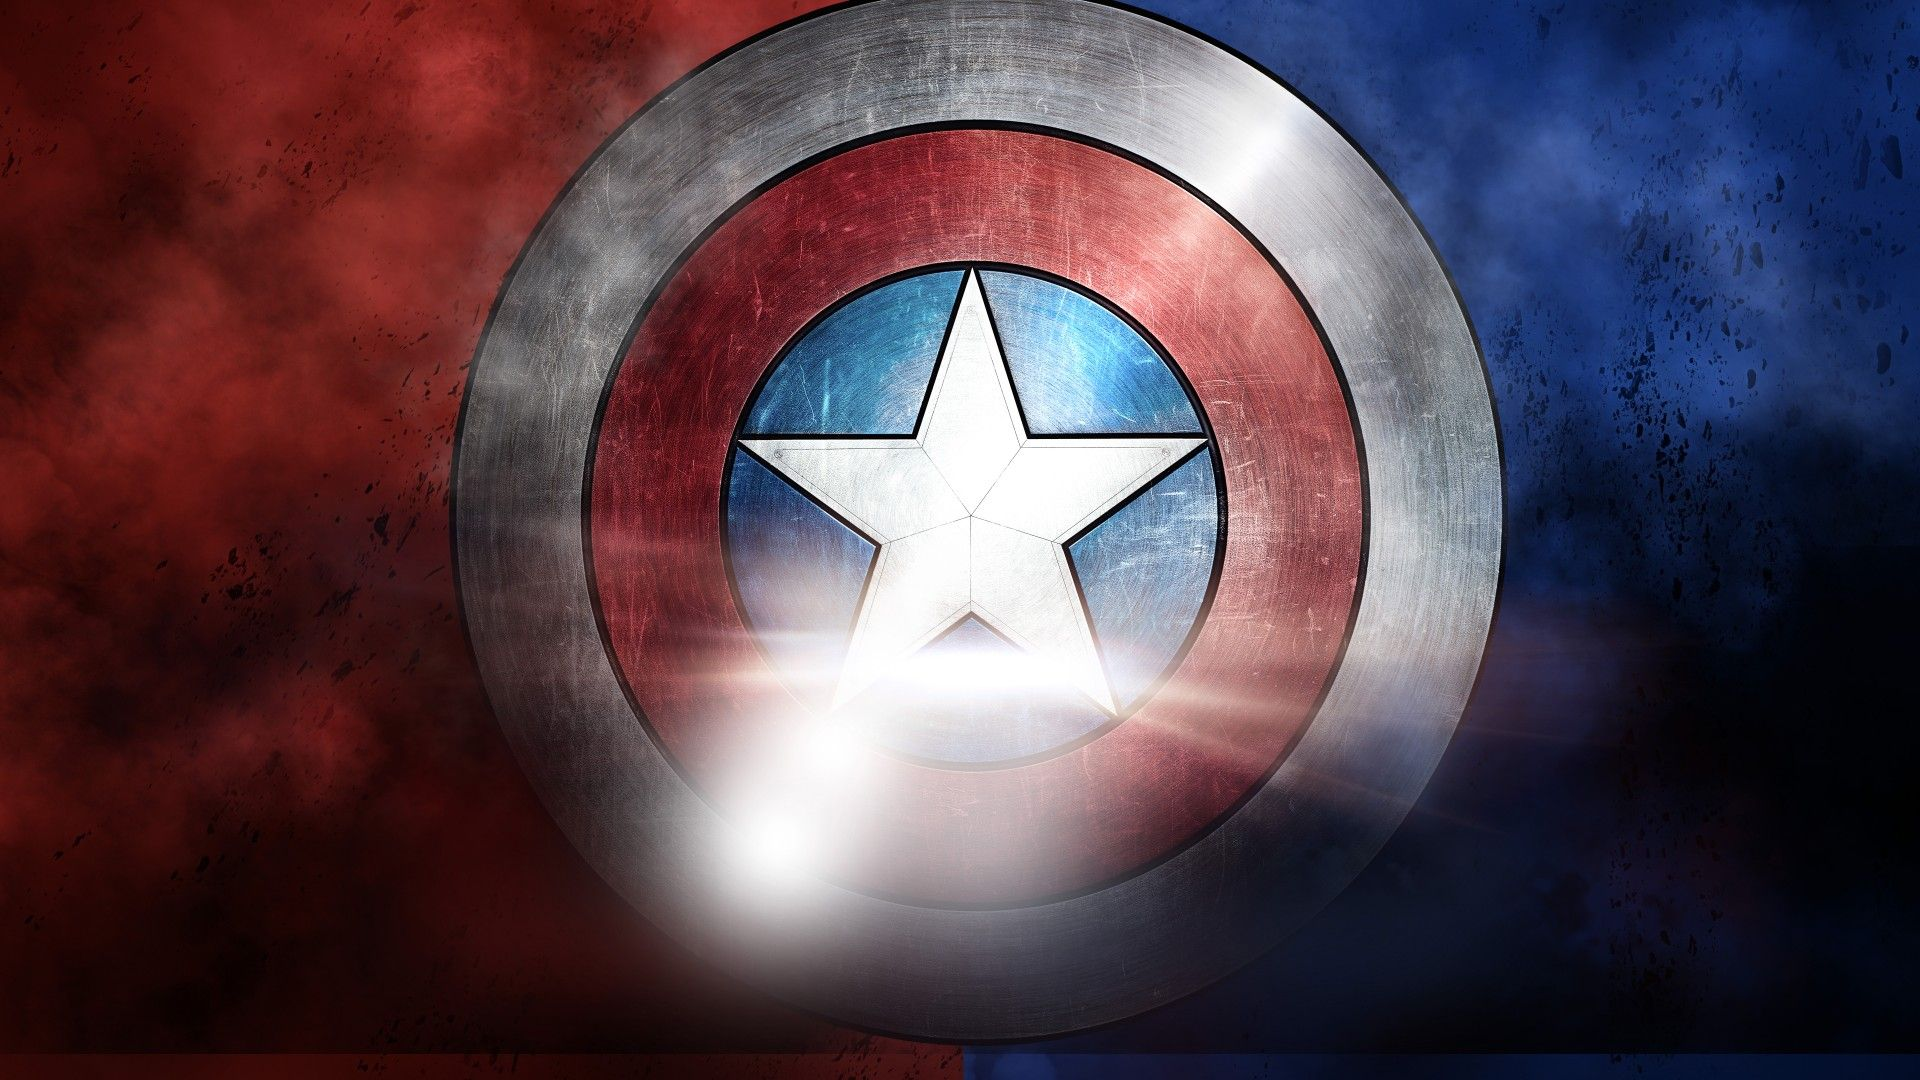 Download Wallpapers Of Captain America Shield American Marvel Movi Captain America Shield Wallpaper Captain America Wallpaper Captain America Shield Canvas